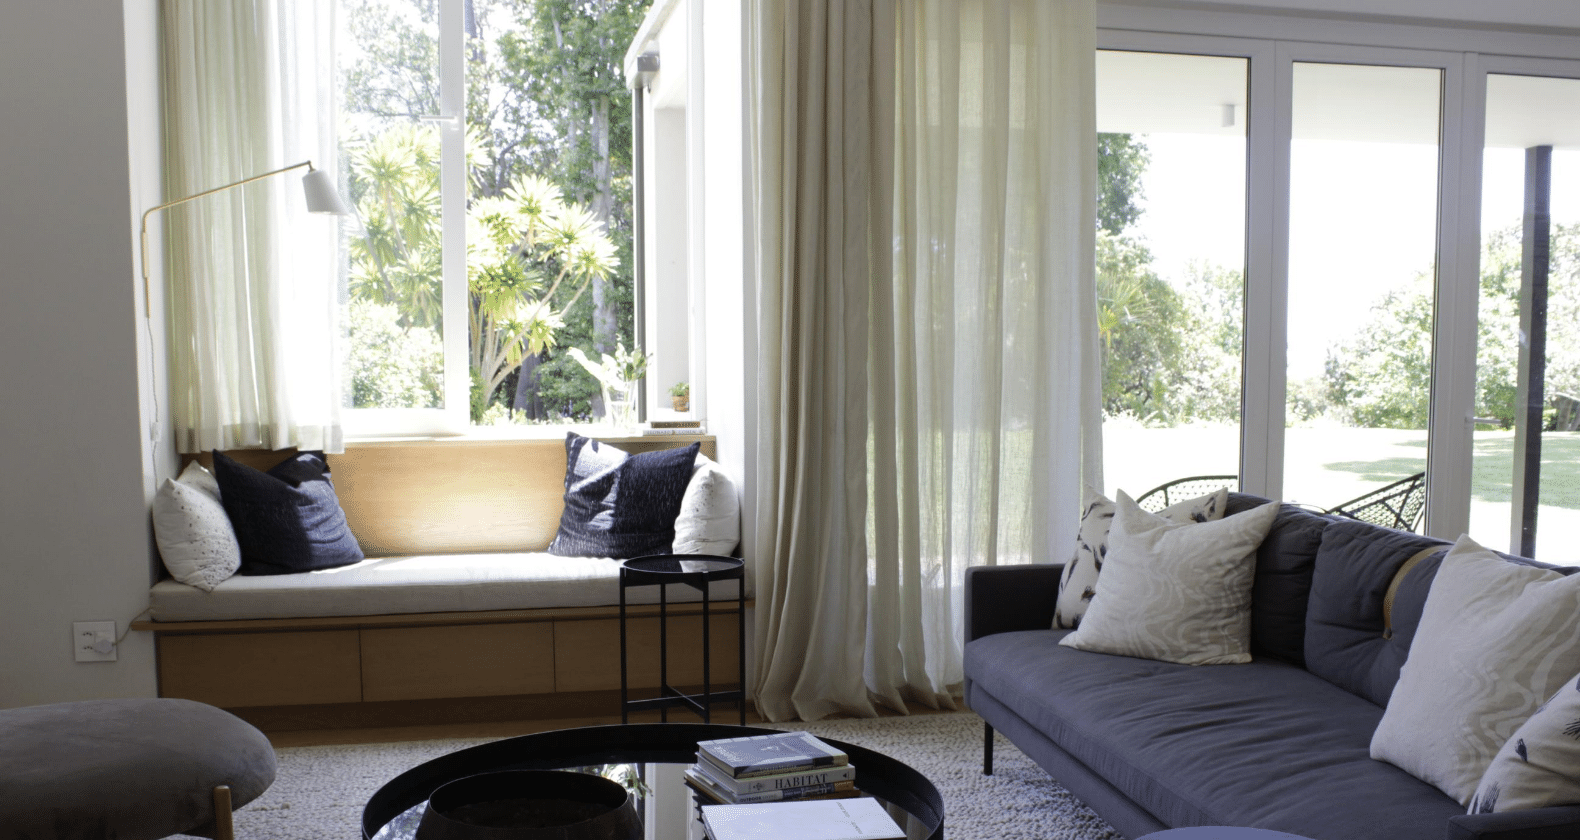 Home Decor Curtains play an important role